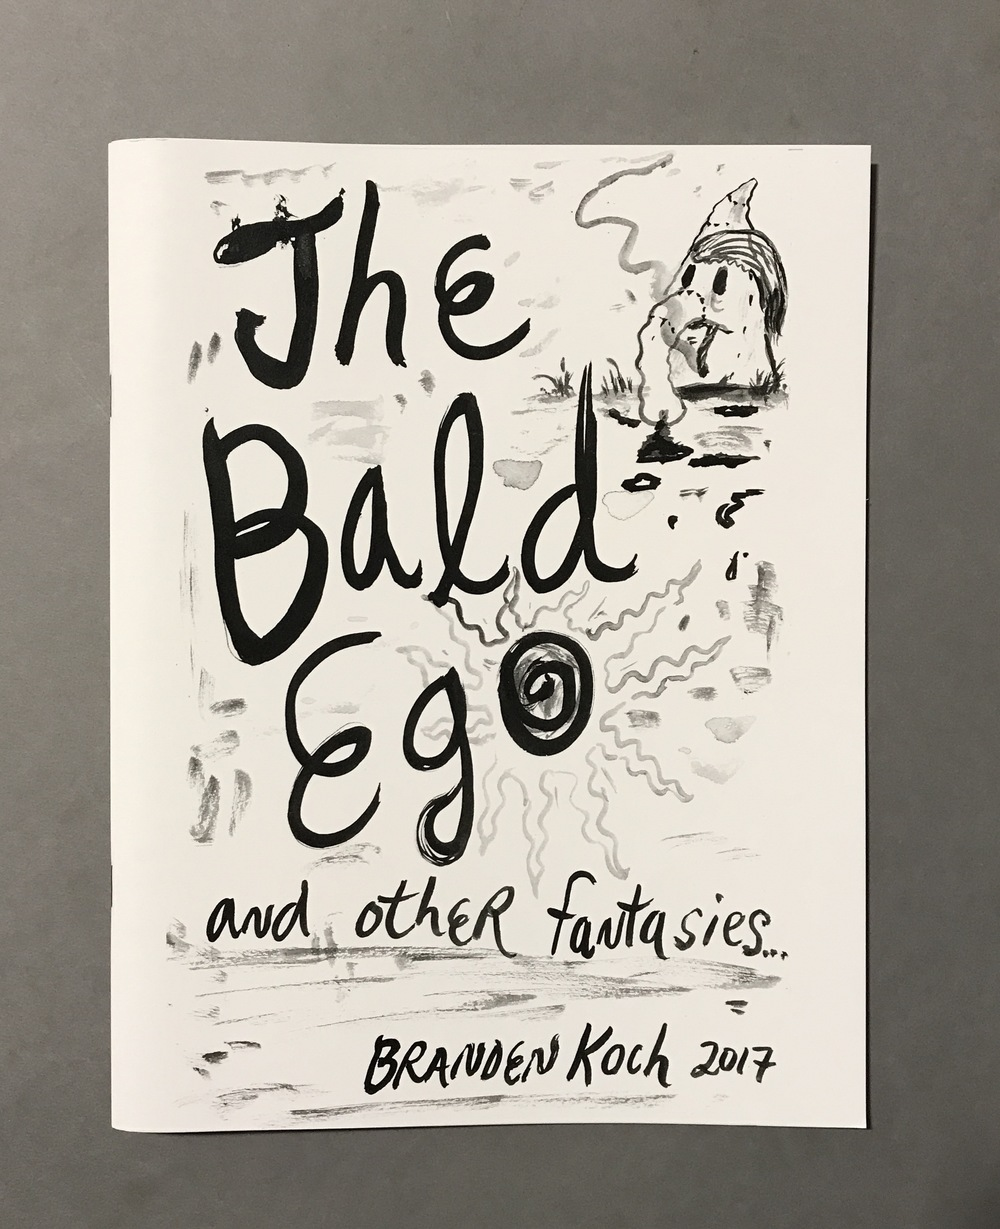 Branden Koch The Bald Ego (publication)